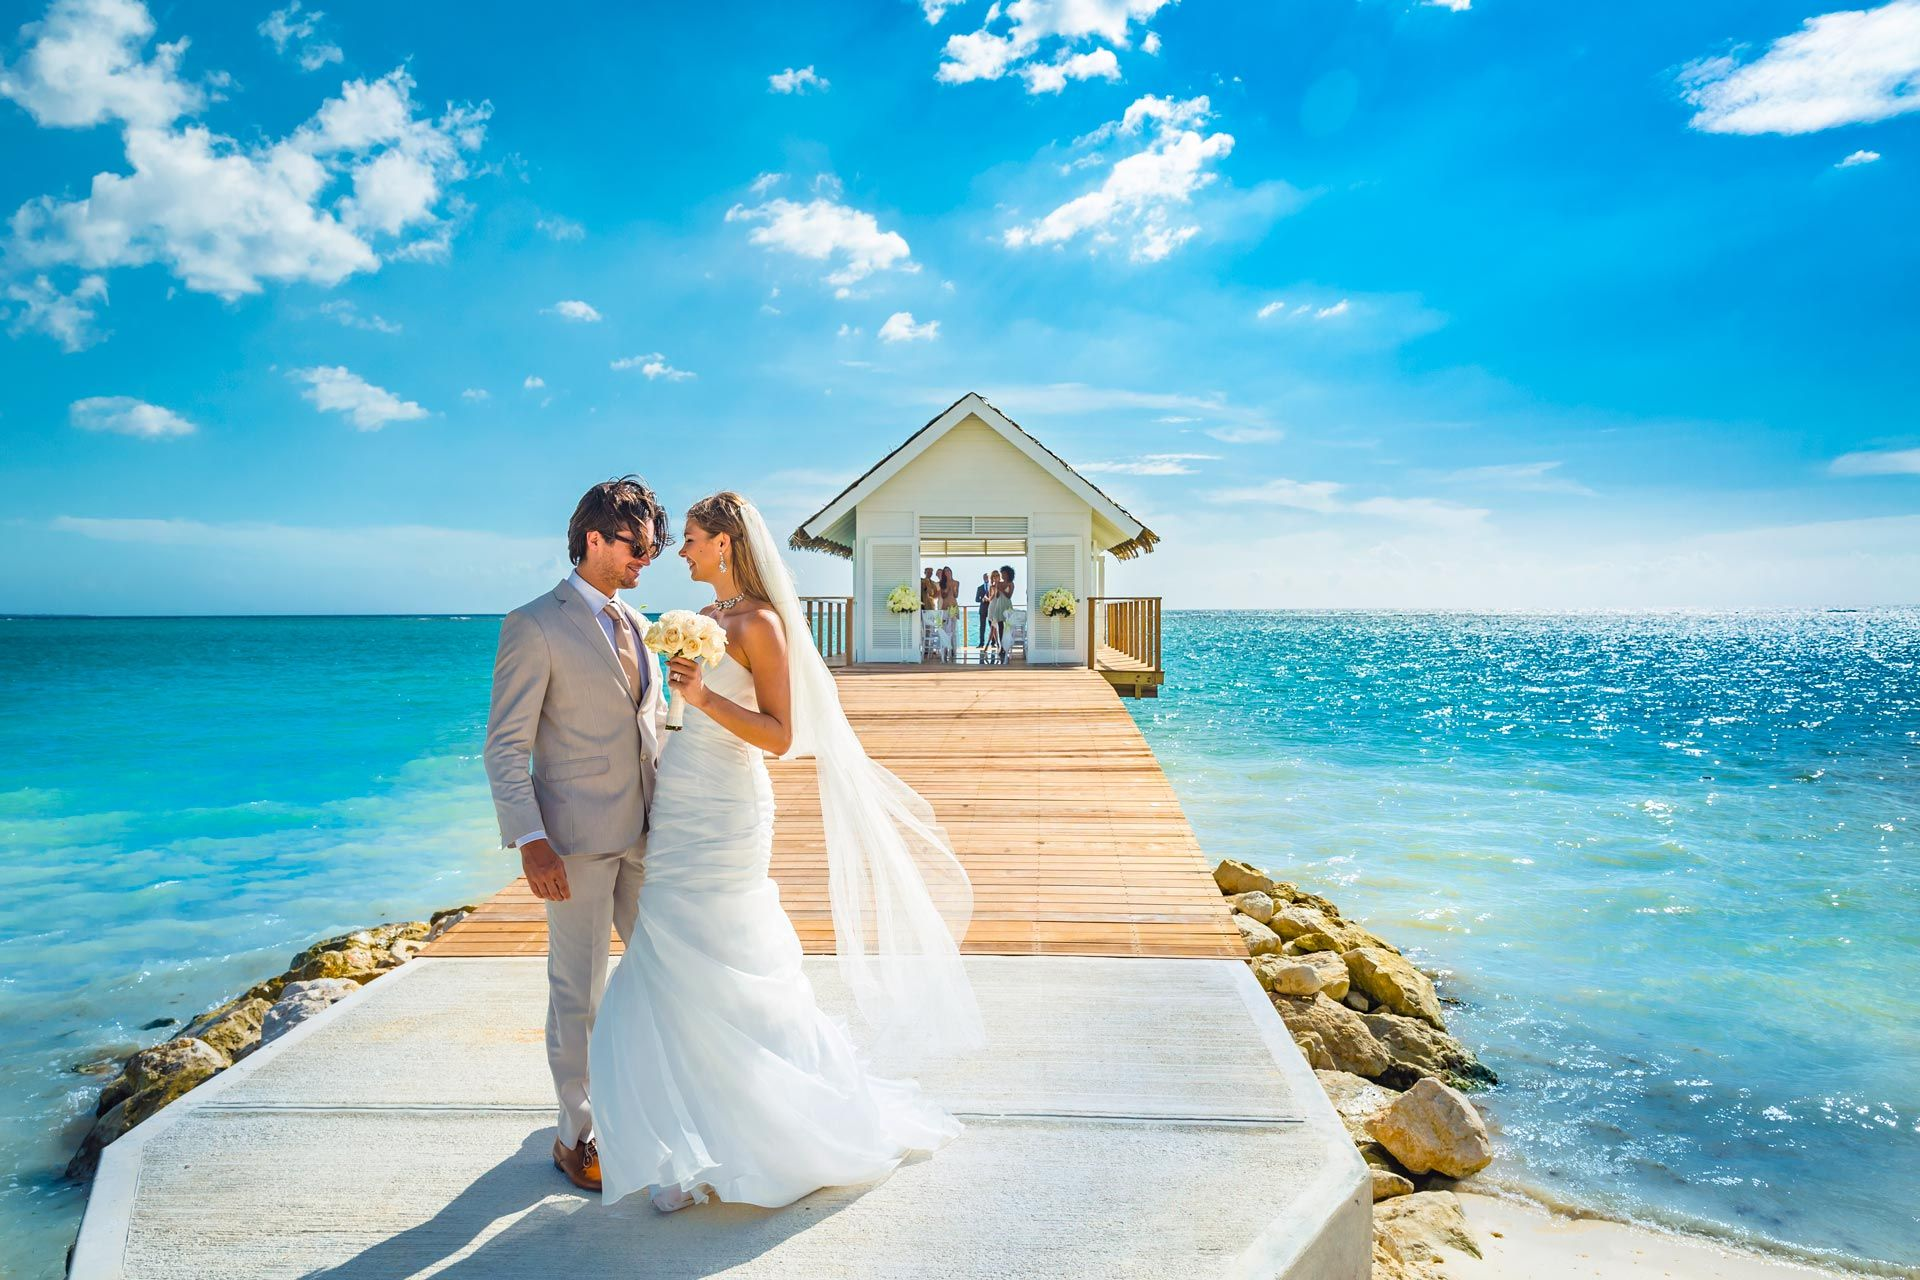 Resort destination wedding